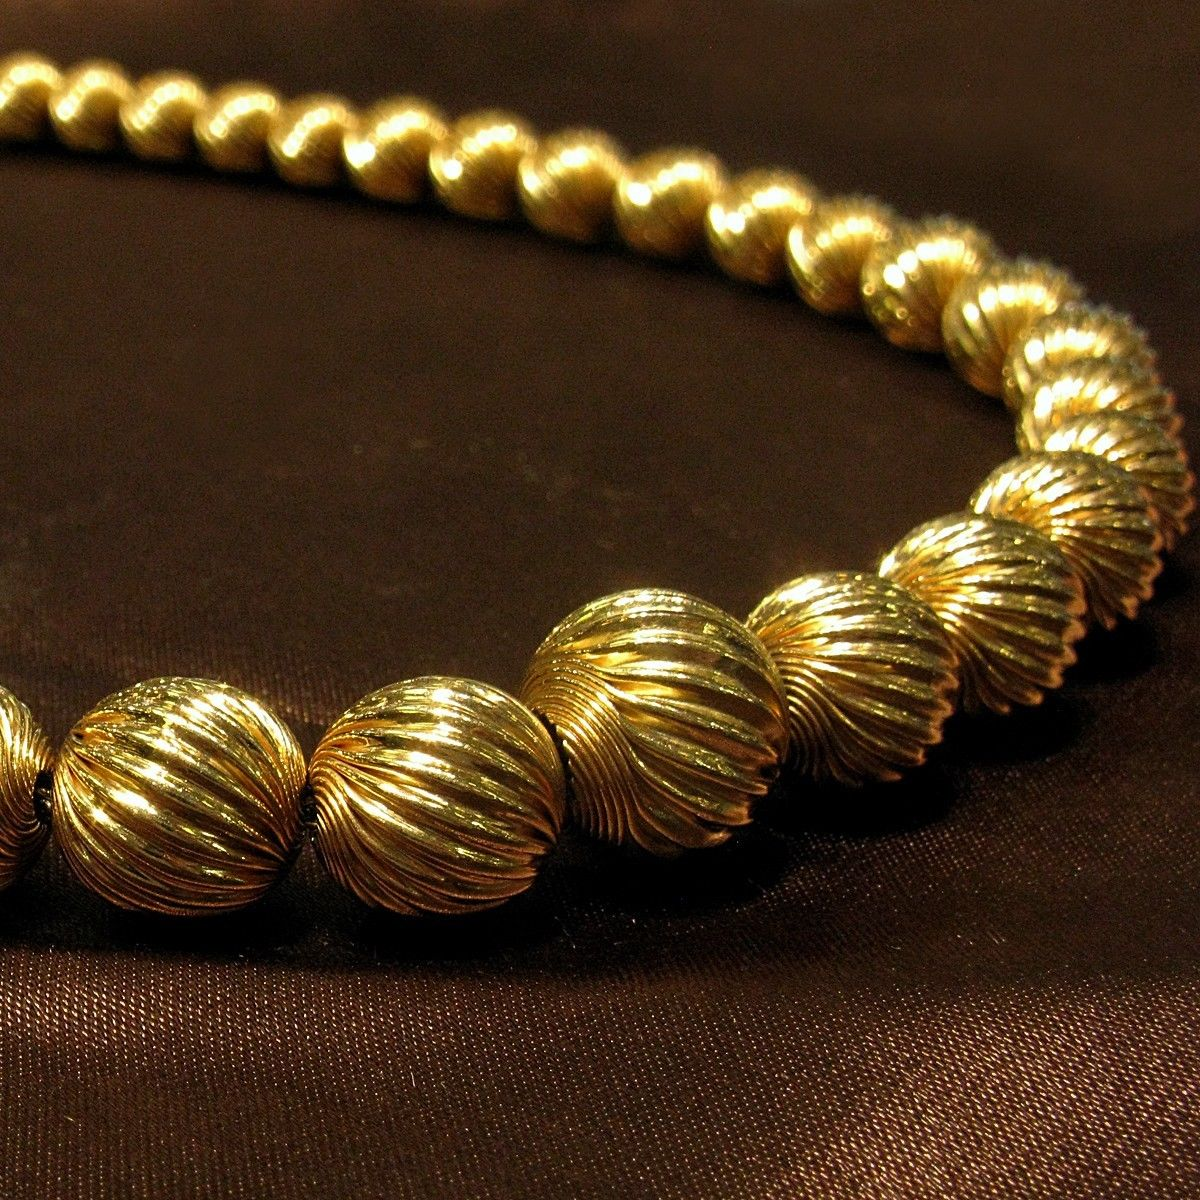 14k swirled gold bead necklace on a gold chain 16 length. Black Bedroom Furniture Sets. Home Design Ideas